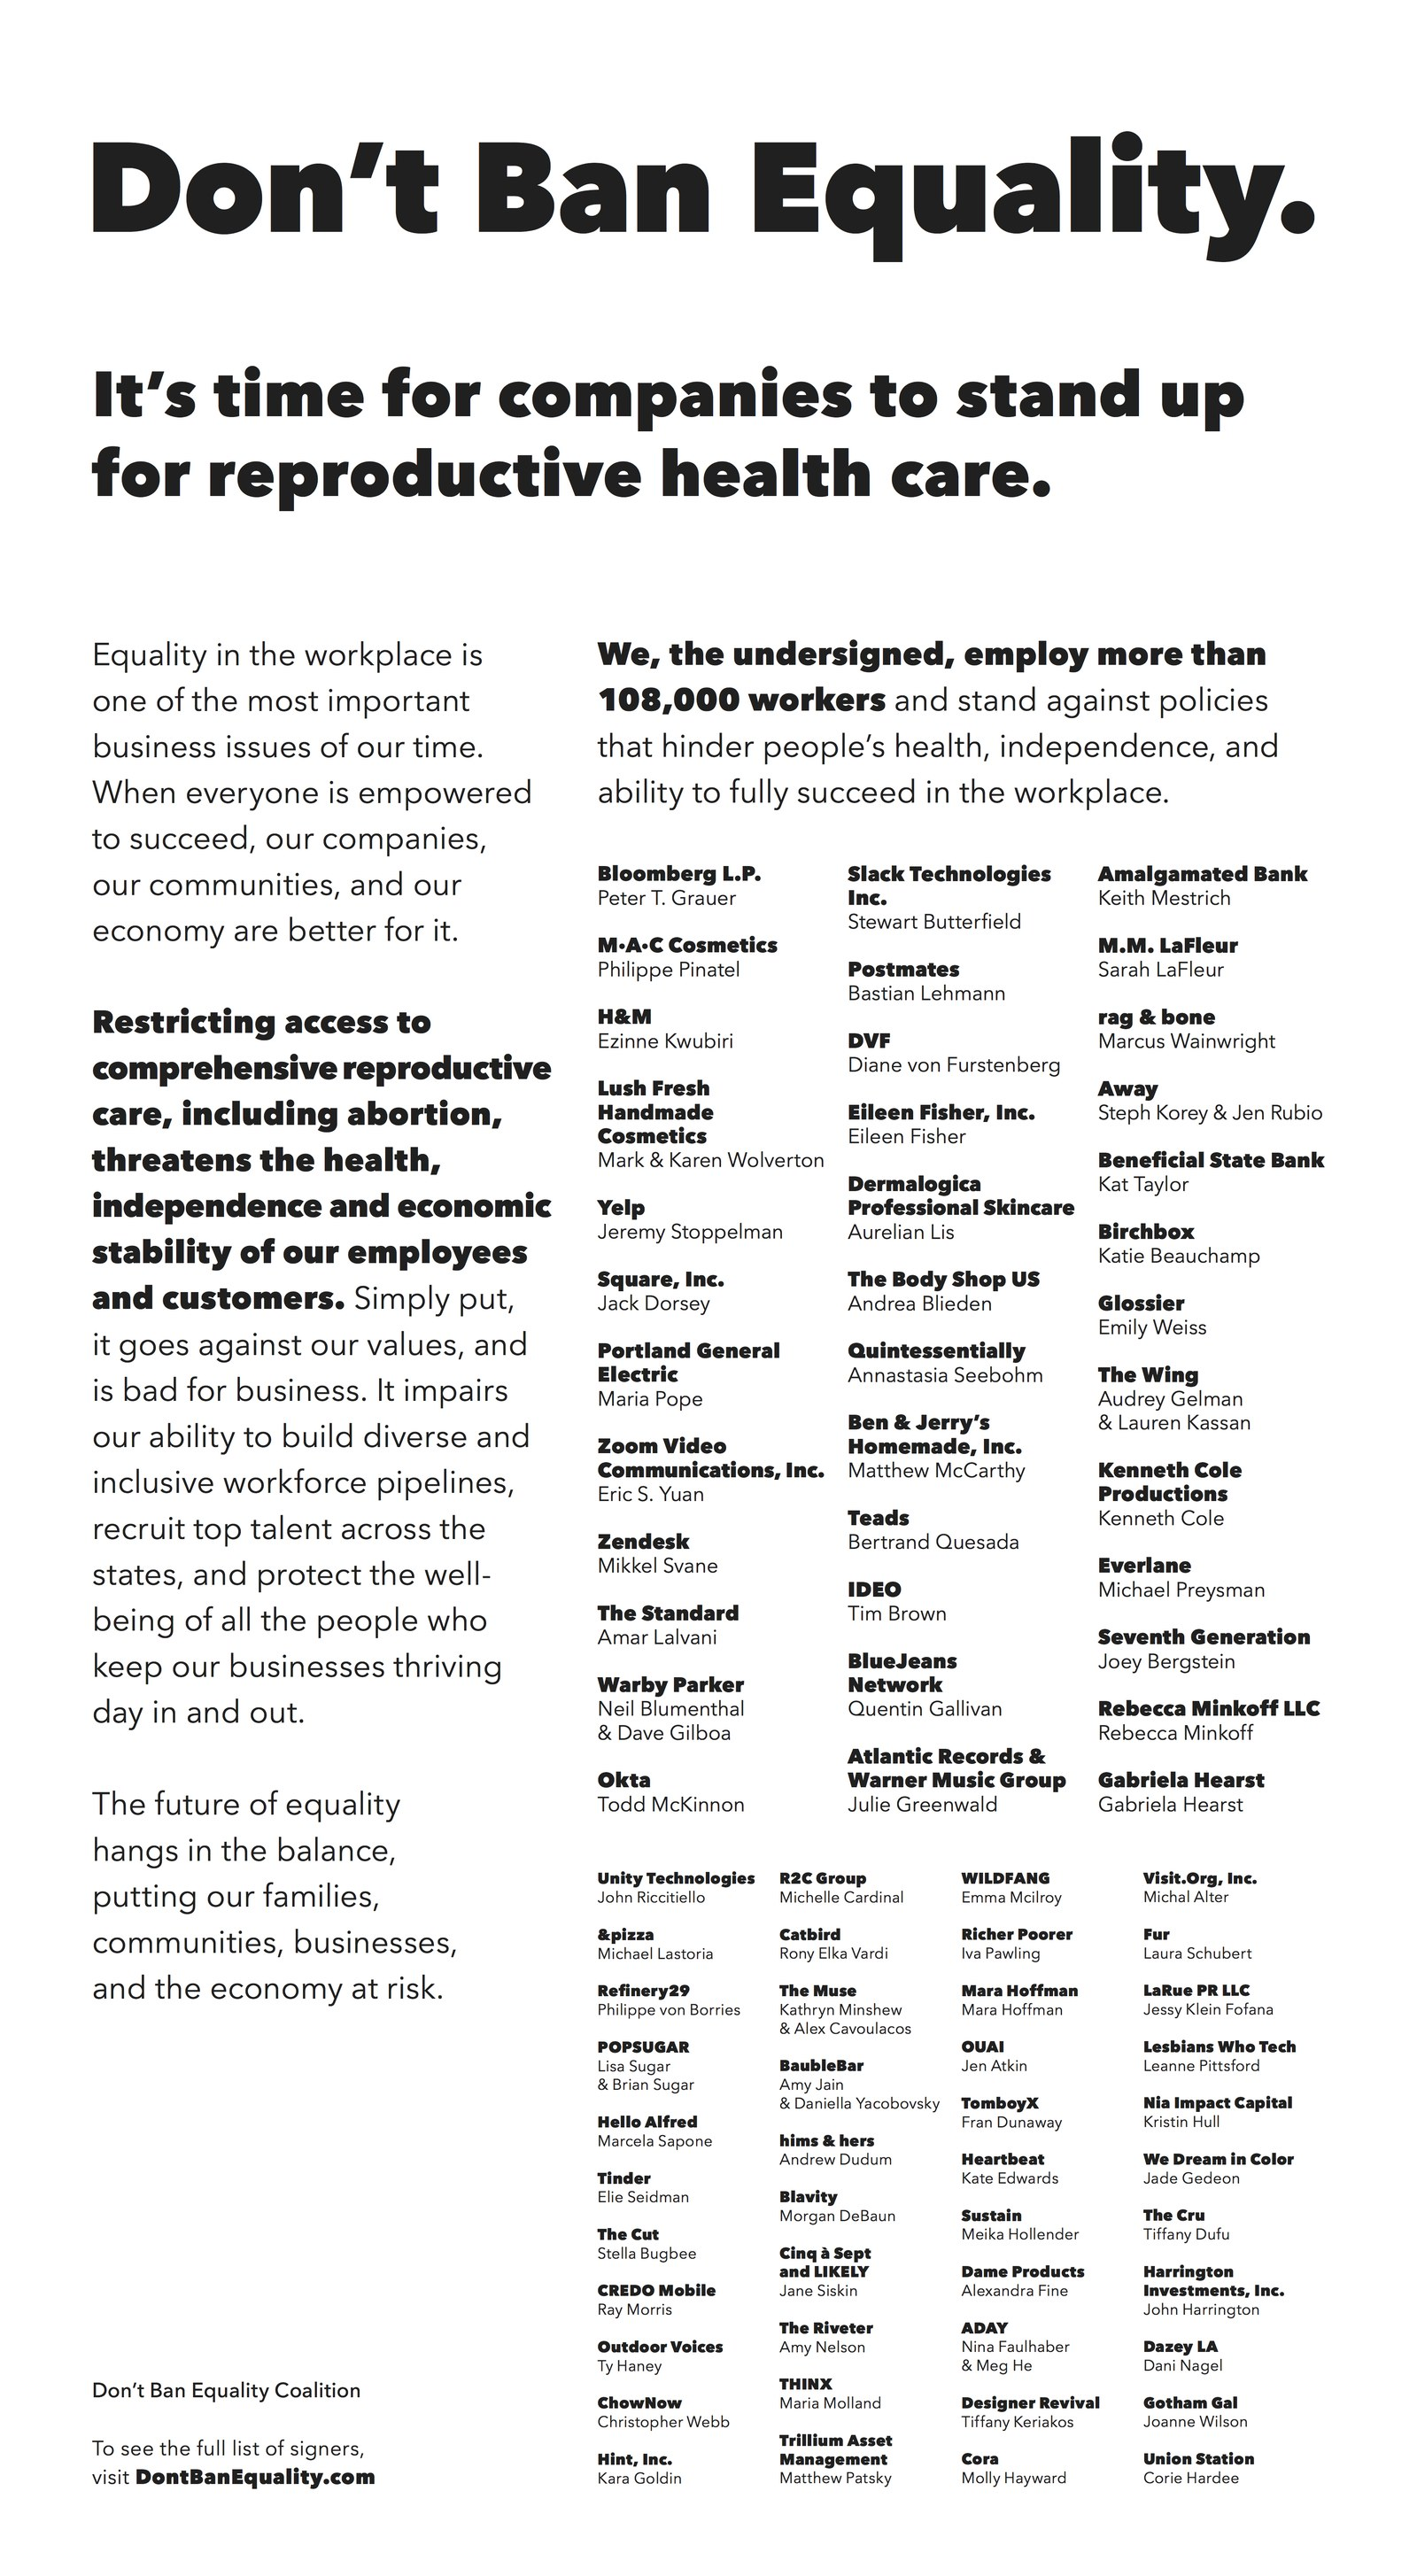 NYT Don't Ban Equality ad.